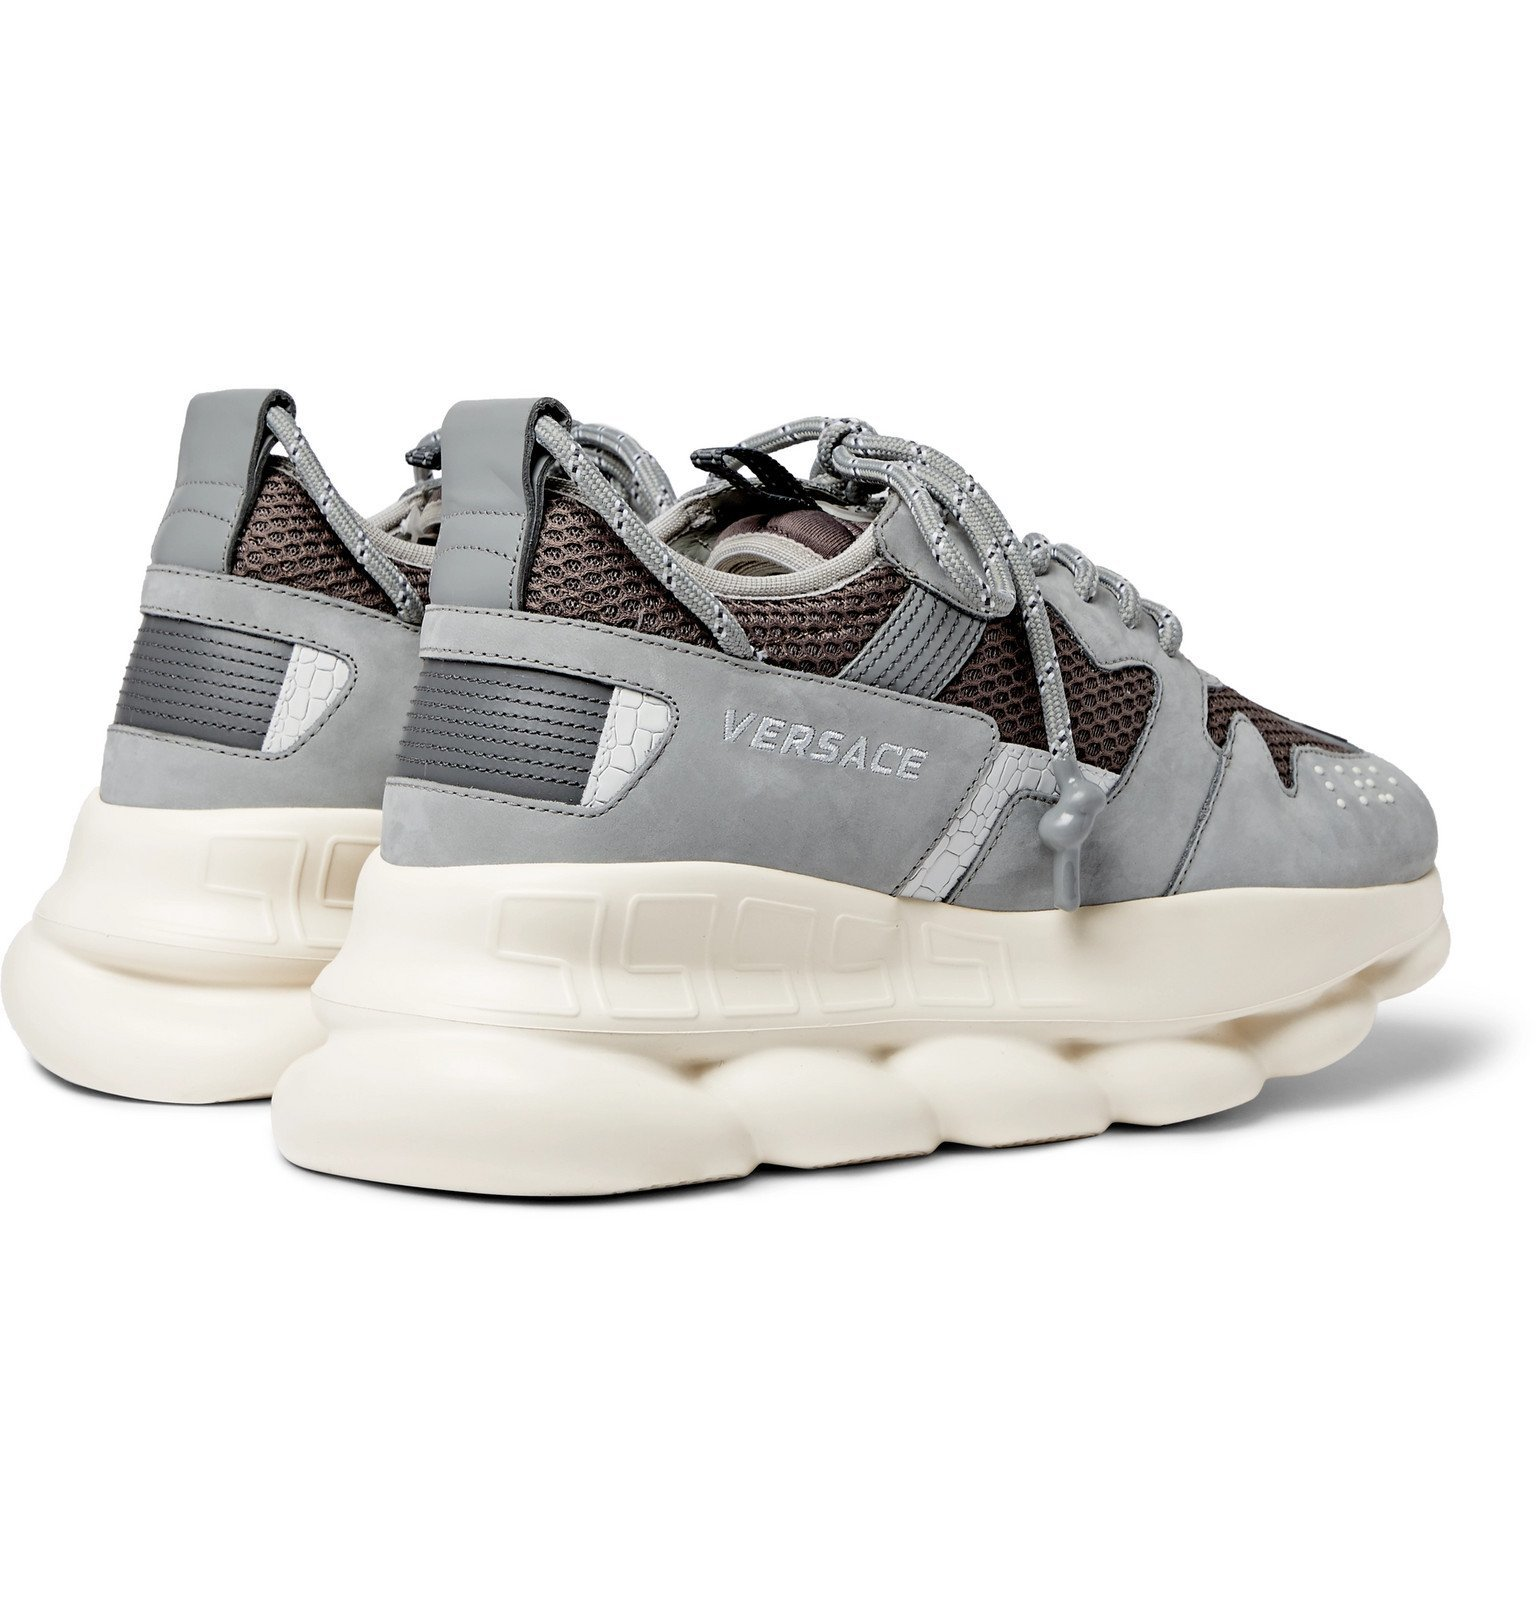 Versace - Chain Reaction 2.0 Panelled Suede and Mesh Sneakers - Gray